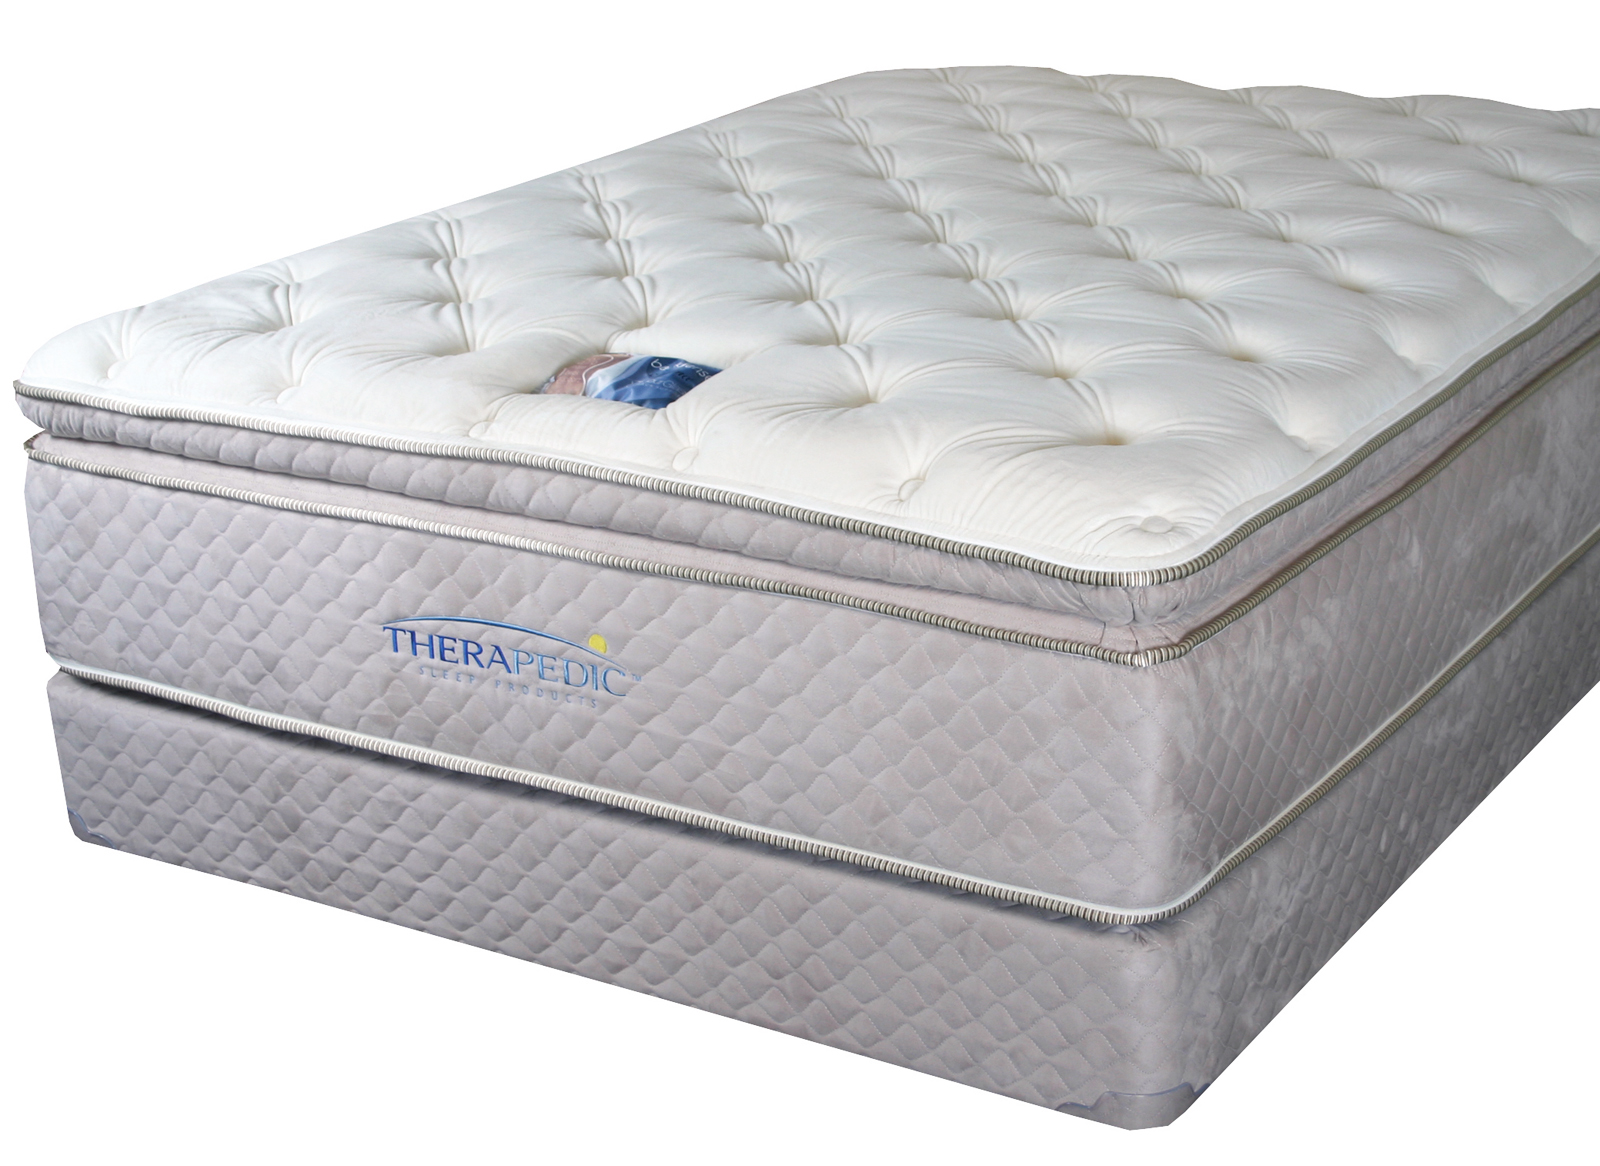 Beautyrest black mattress for Which mattress company is the best